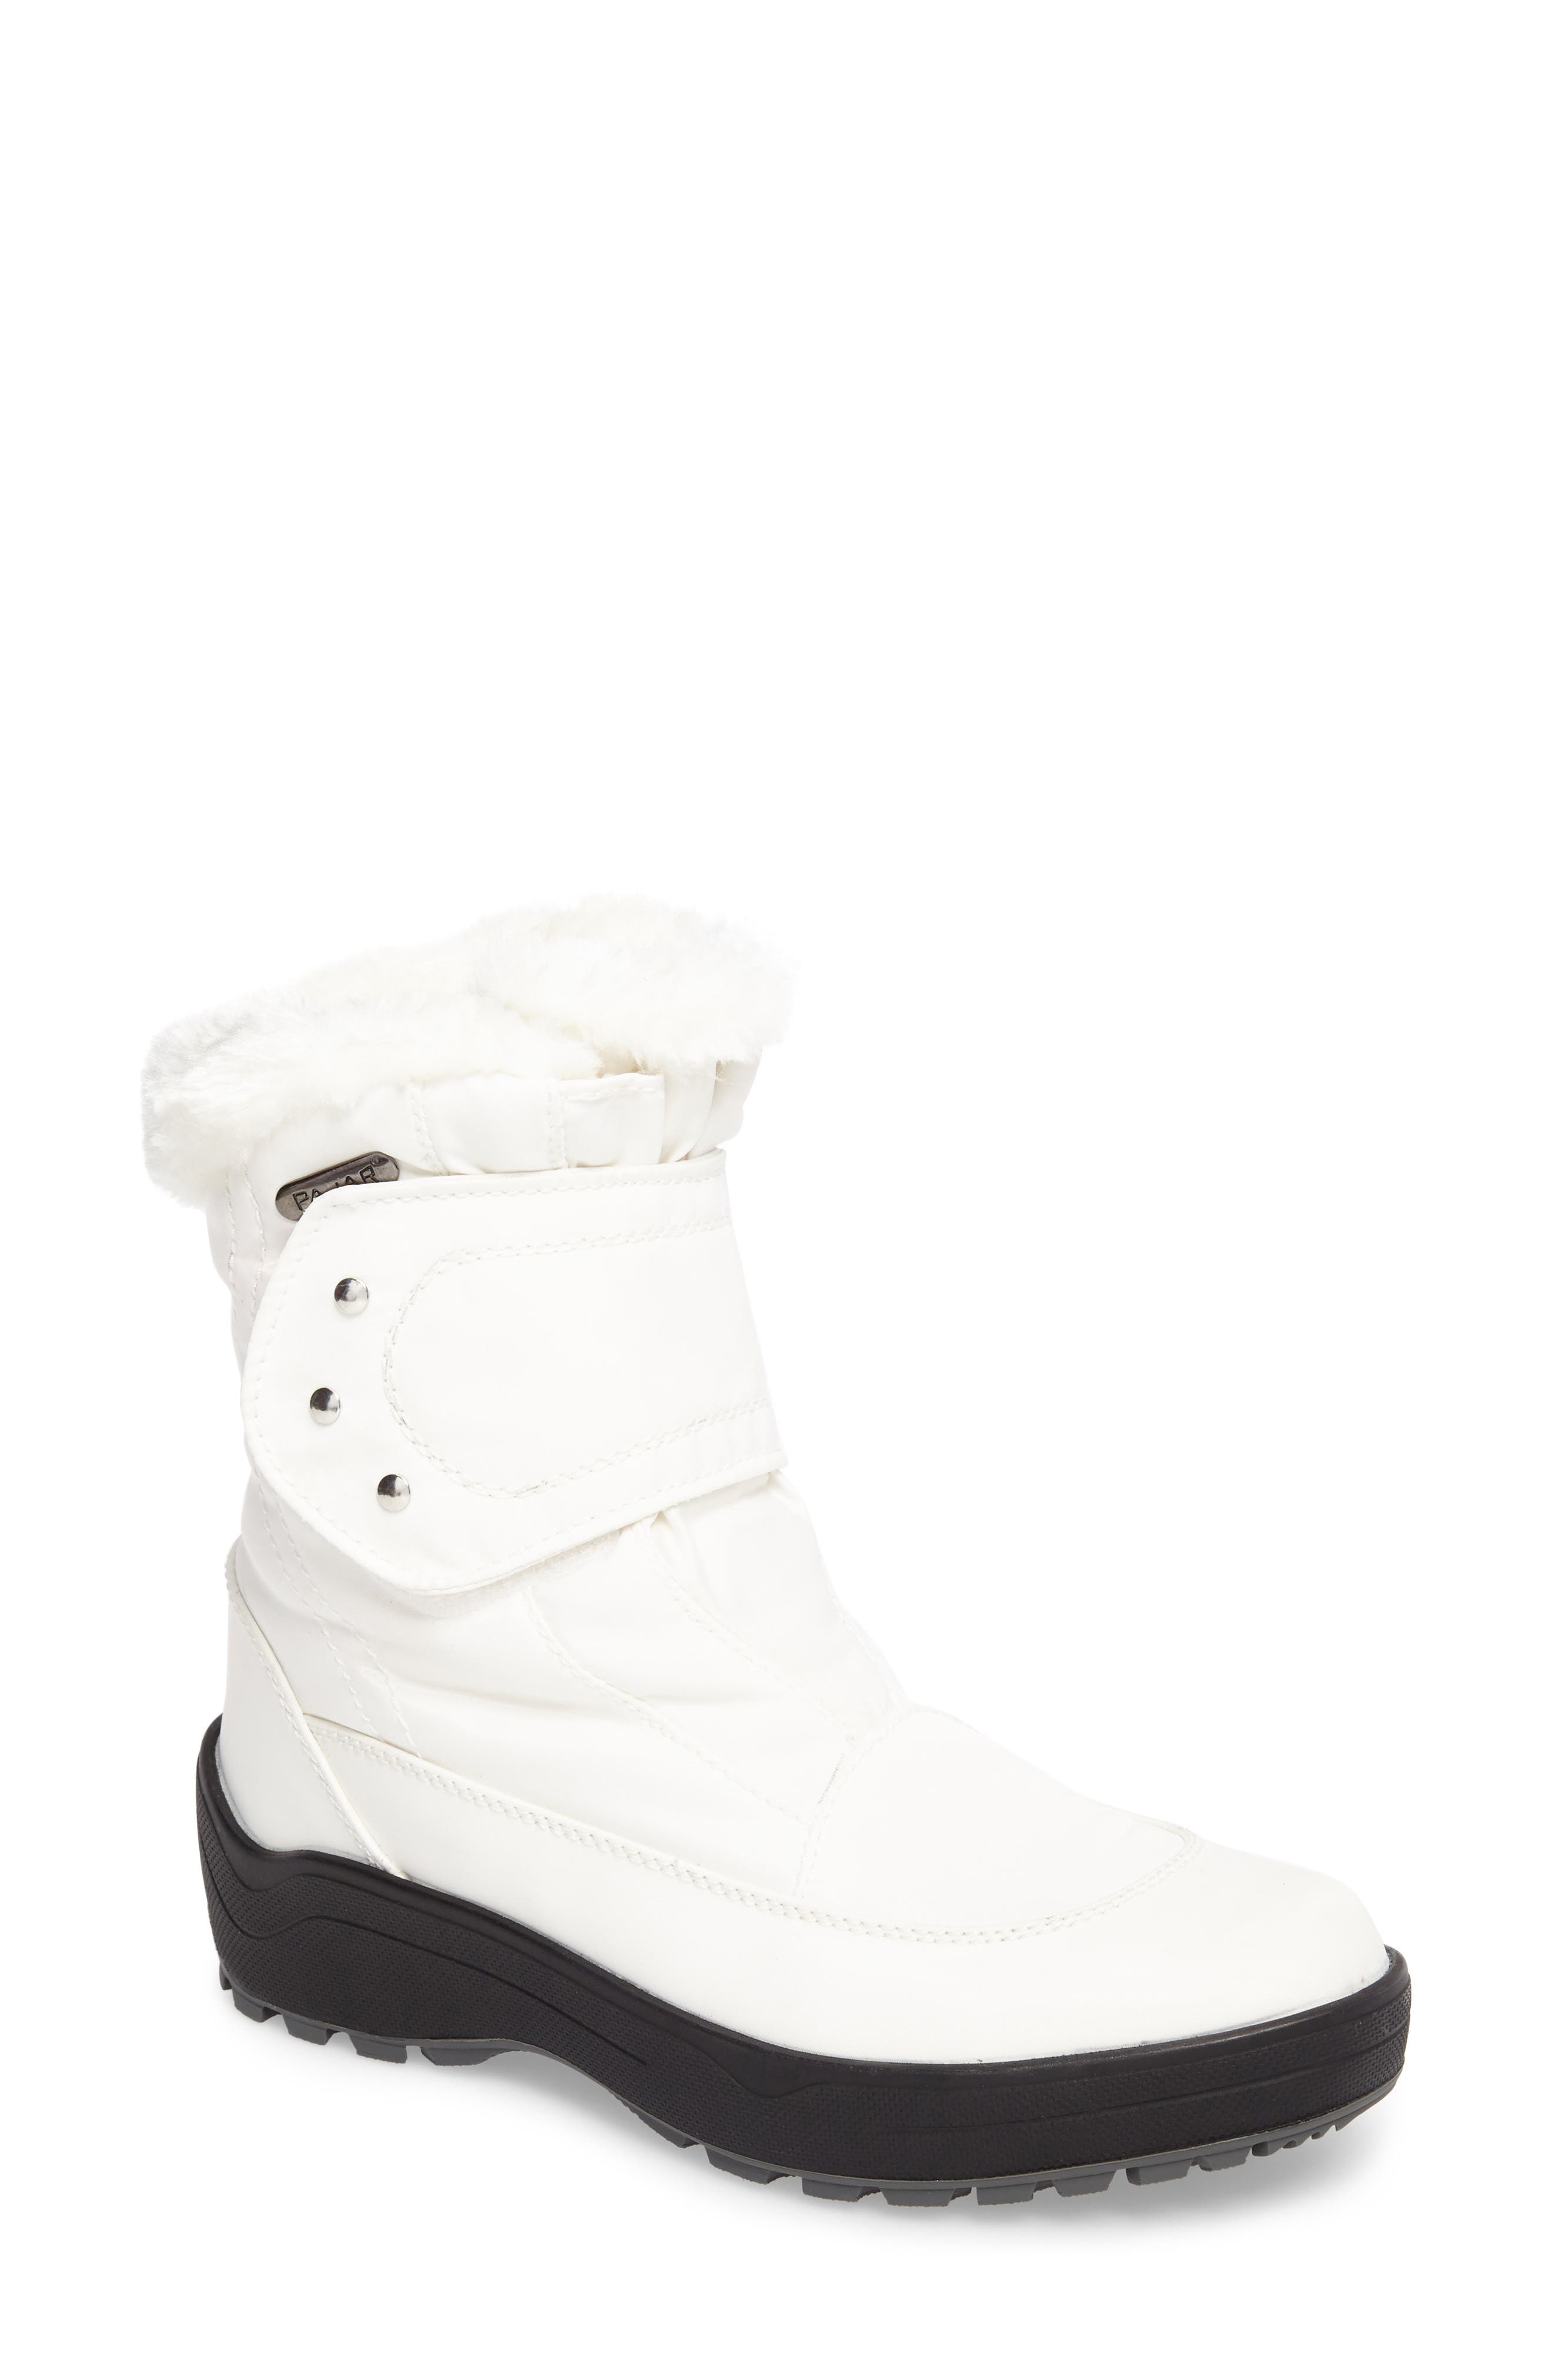 Shoes 'Moscou' Snow Boot,                             Main thumbnail 1, color,